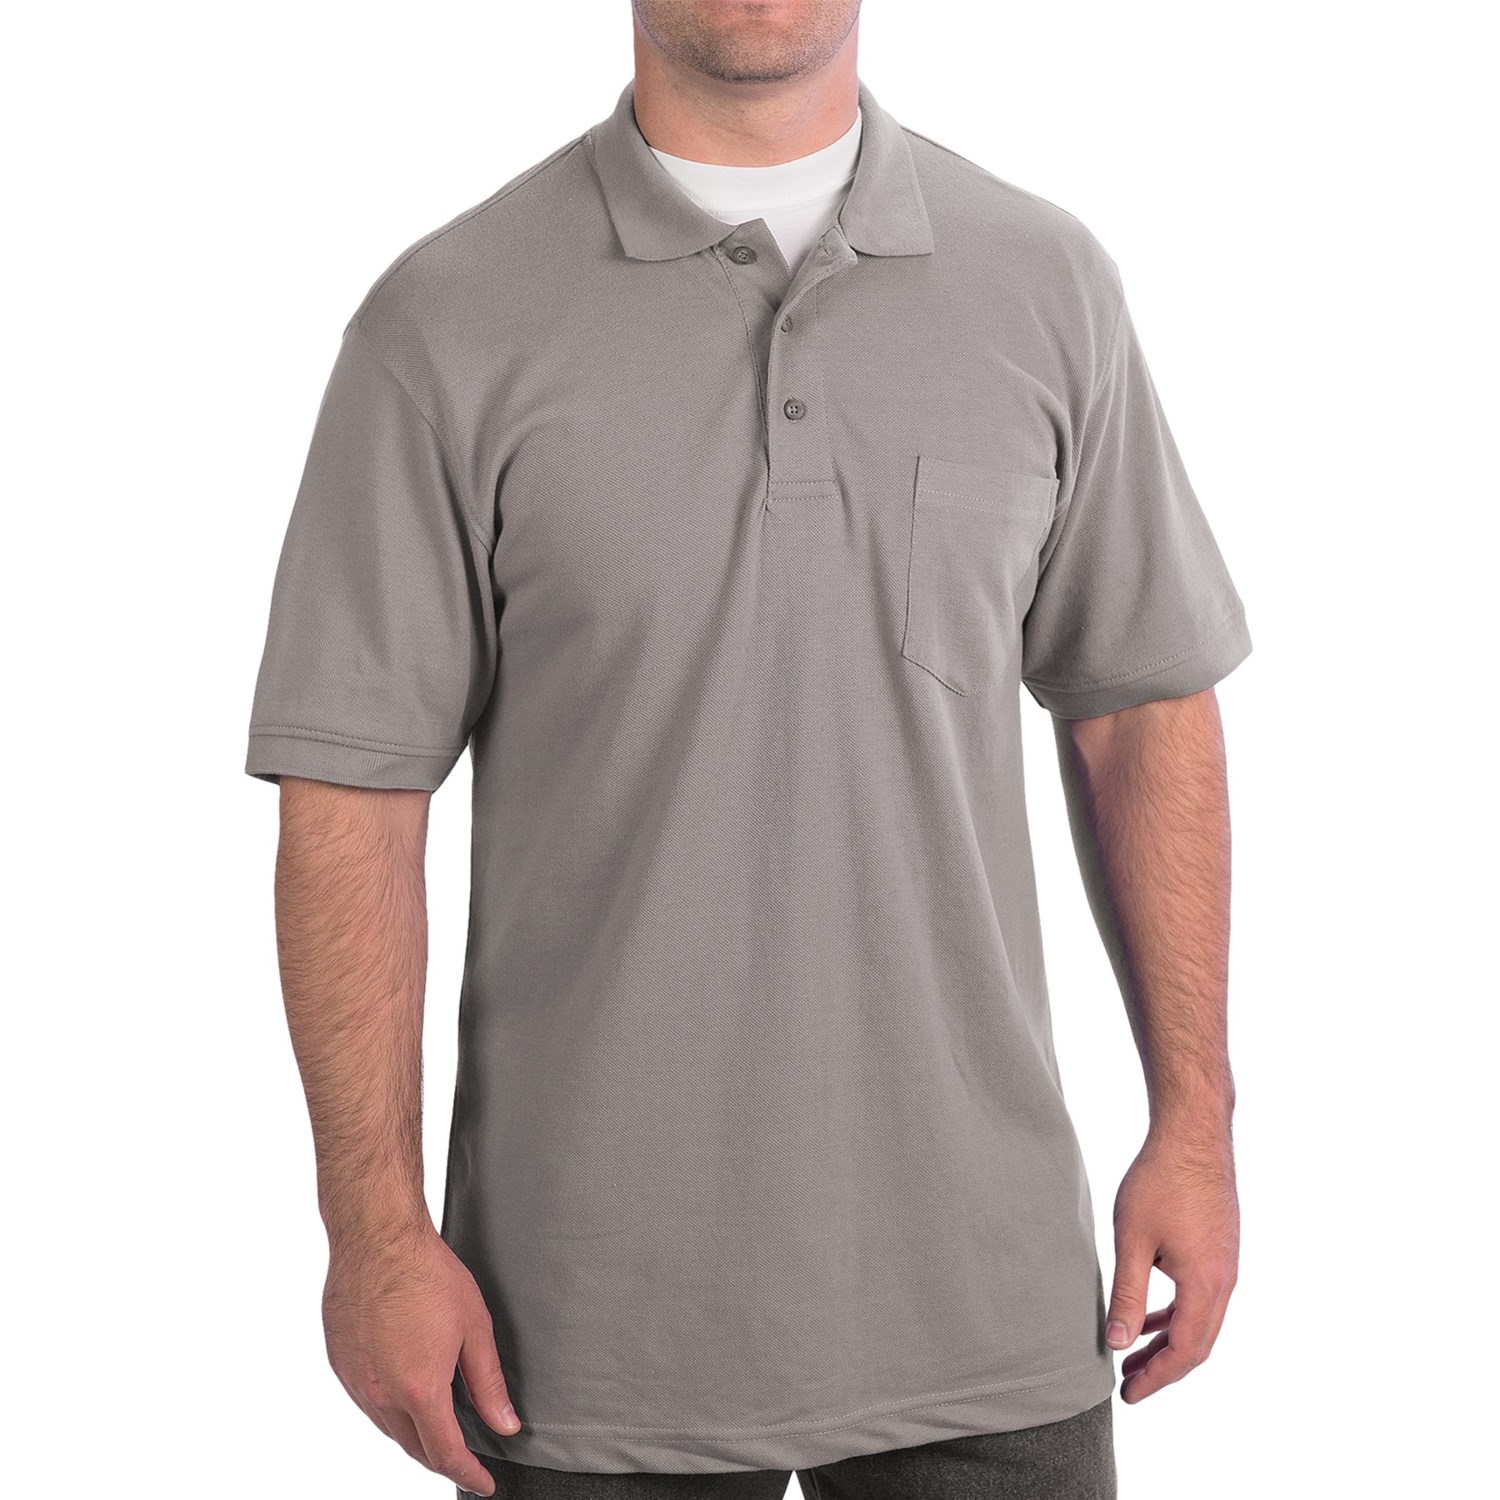 Wearguard weartuff pique polo shirt for men 7873p save 76 for Men s polo shirts with chest pocket